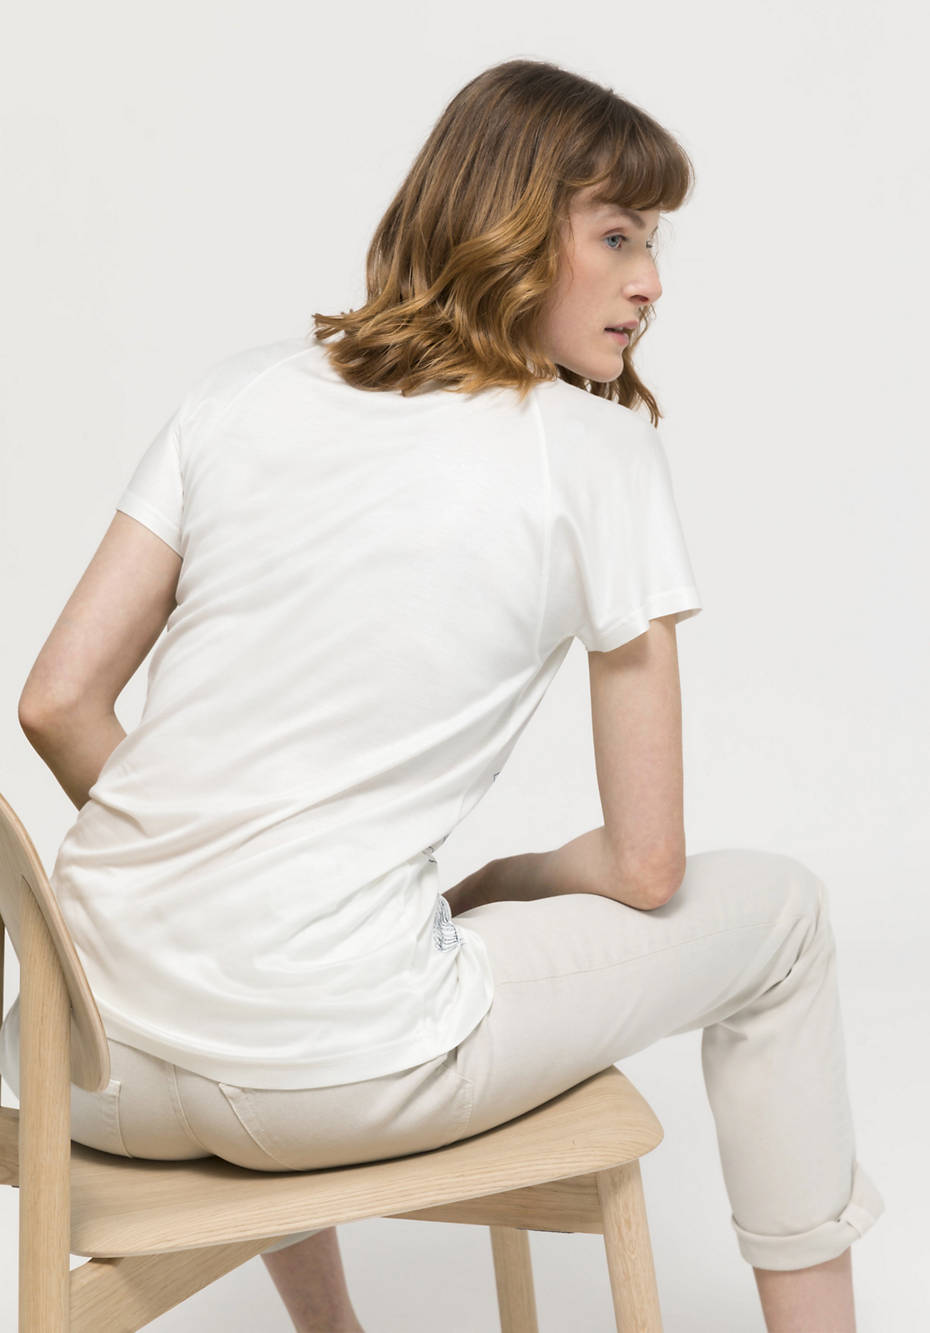 BetteRecycling shirt made from pure TENCEL ™ modal